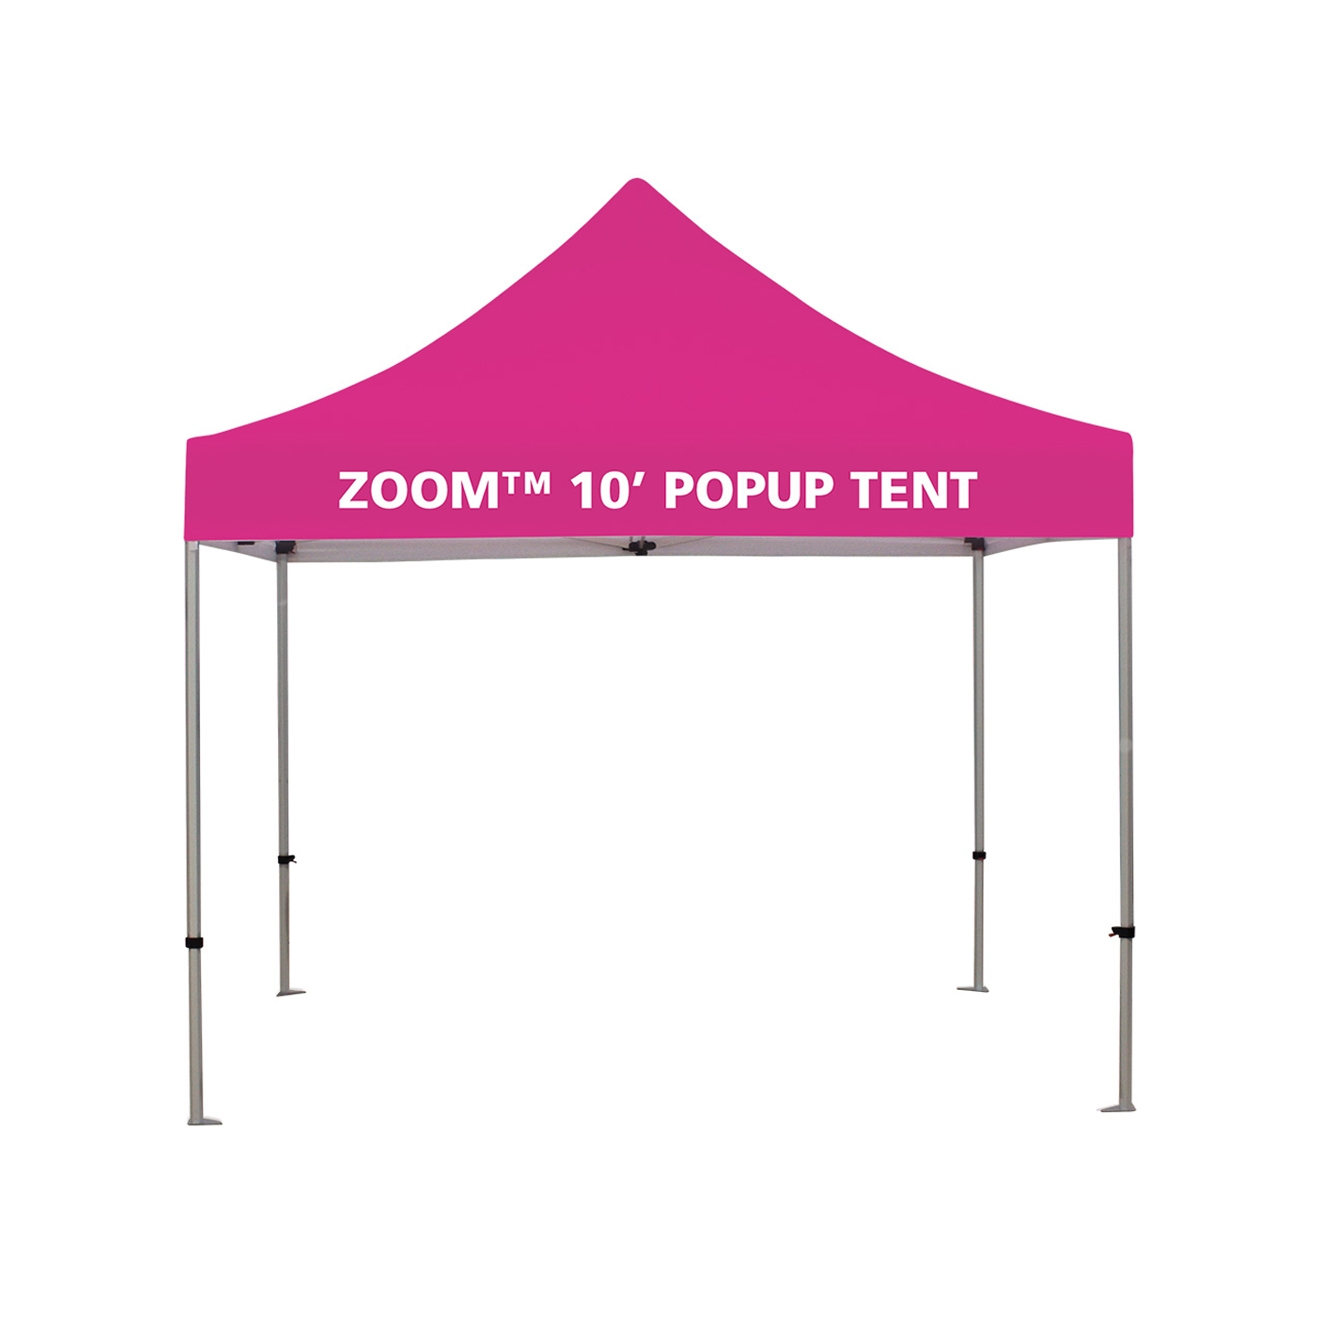 ZOOM 10' Popup Tent Kit with valance printed